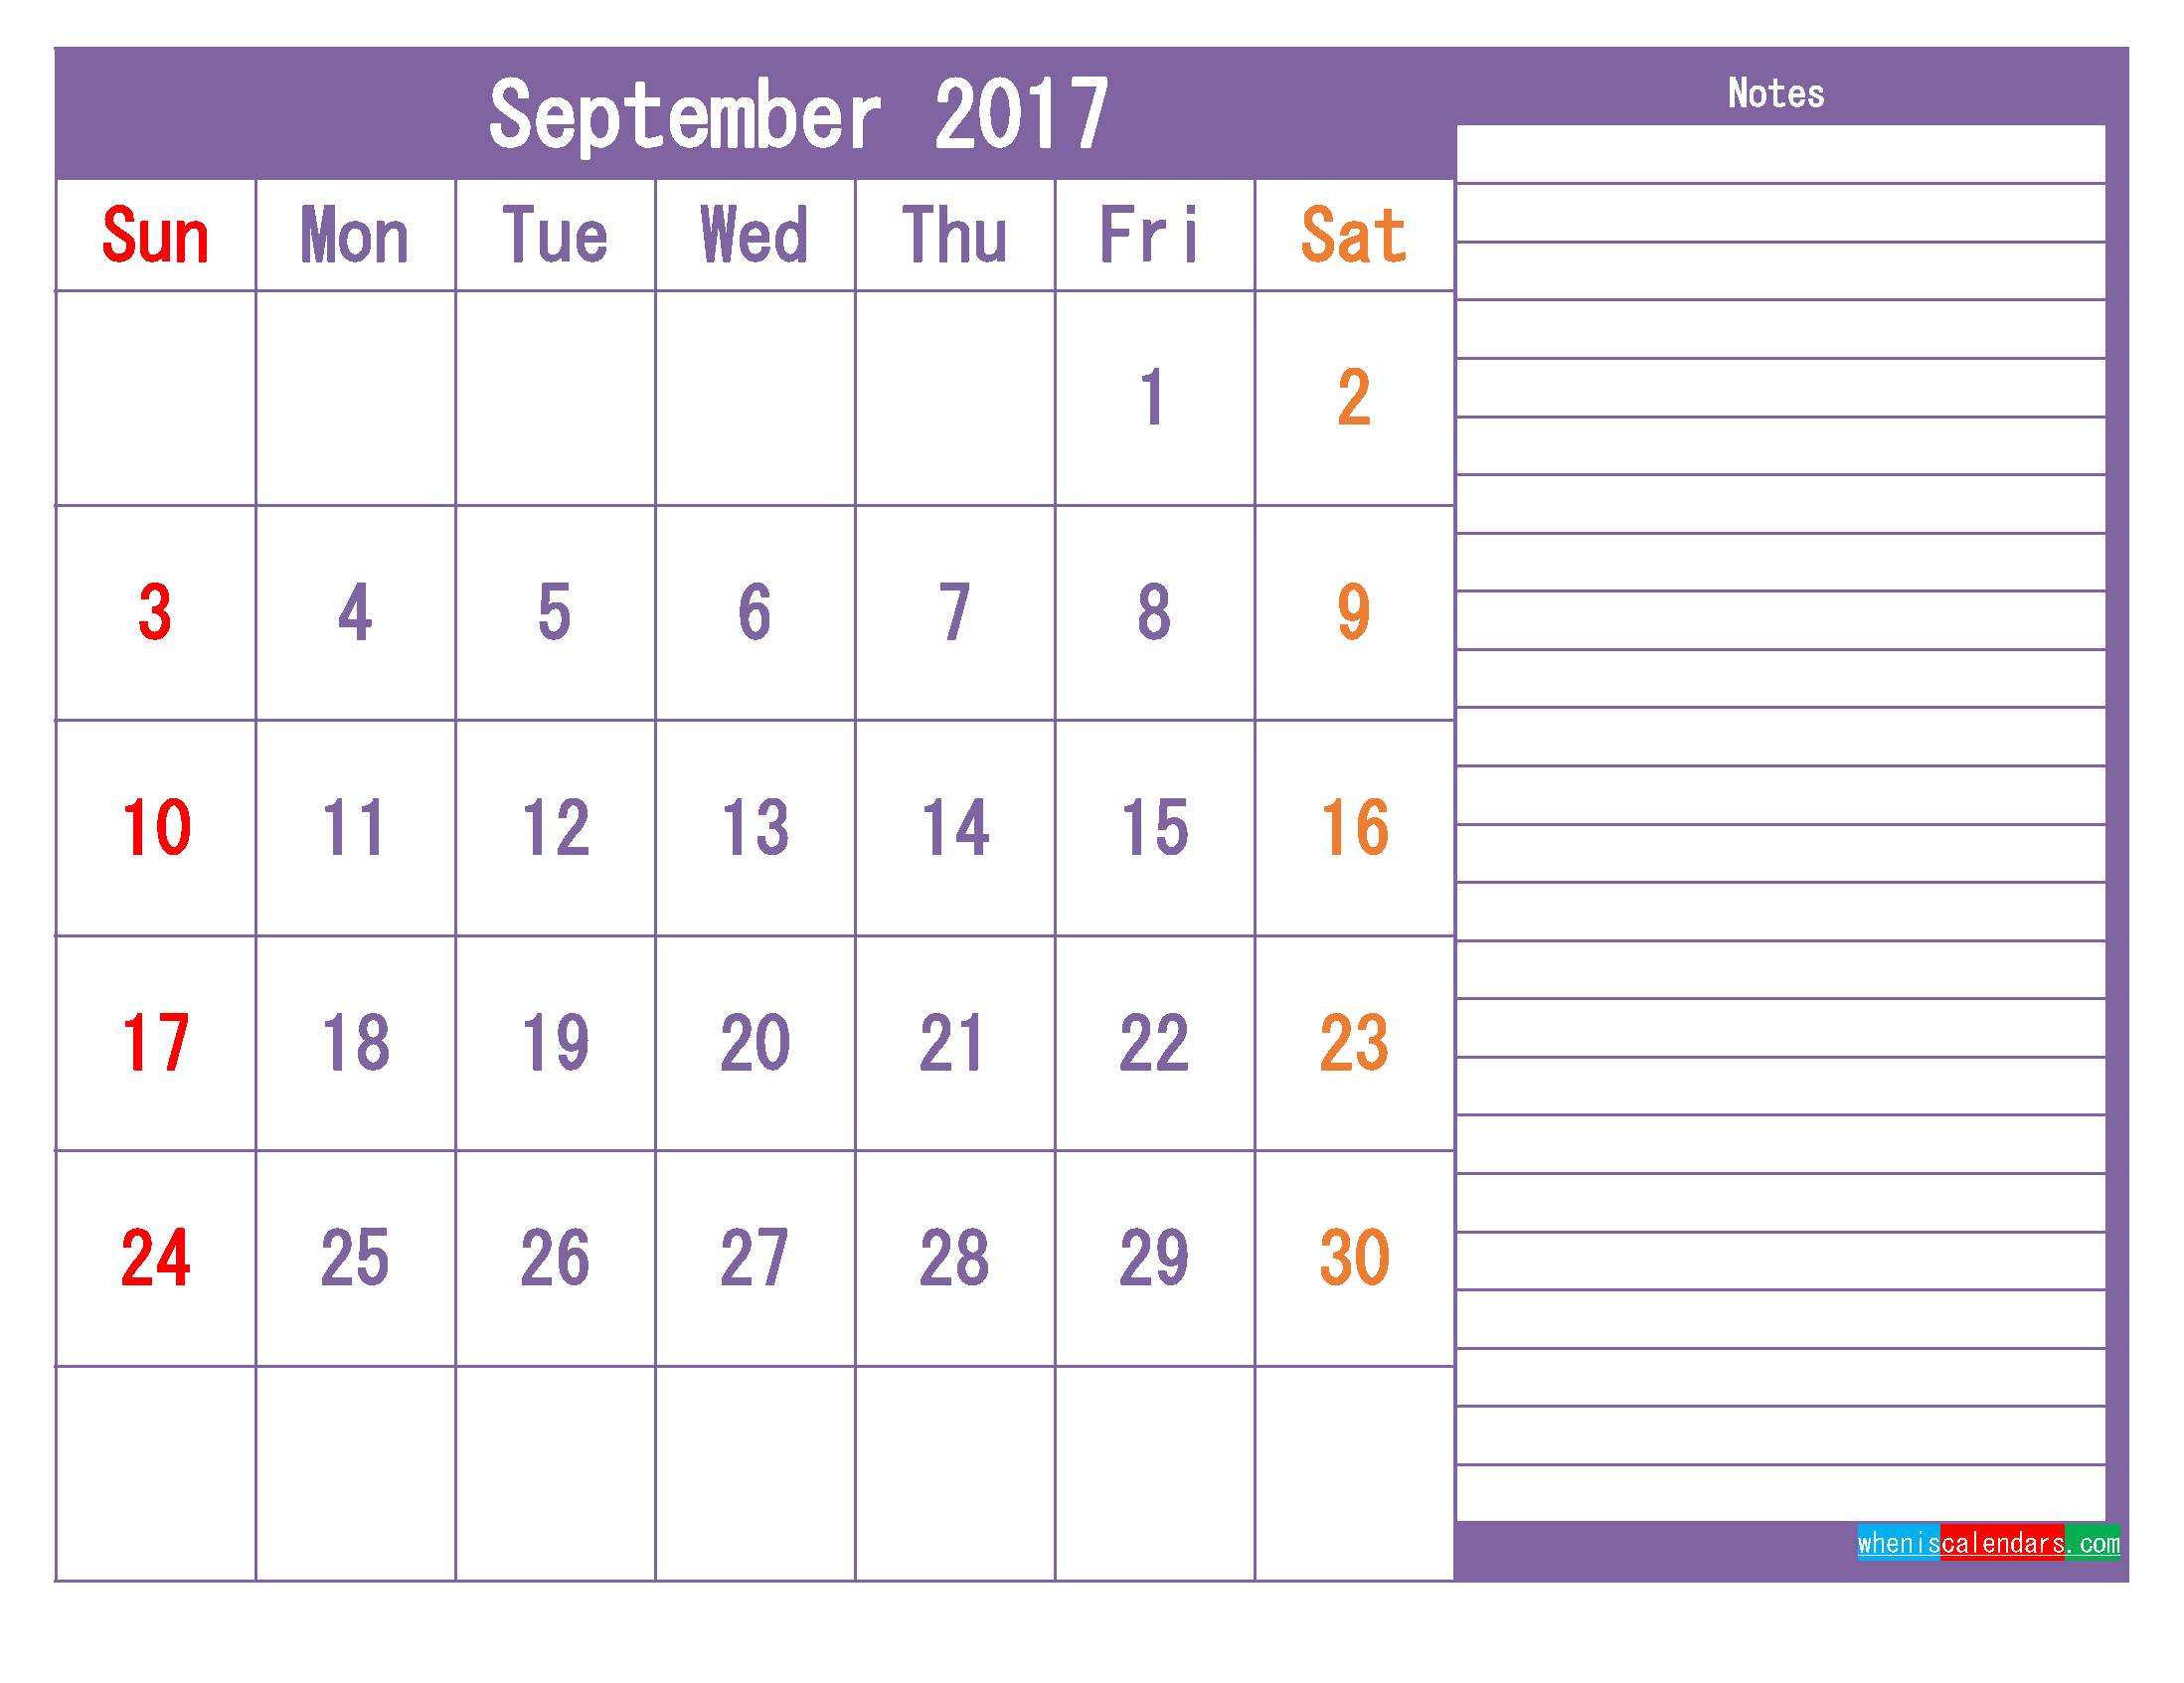 September 2017 Printable Calendar Template as PDF and PNG